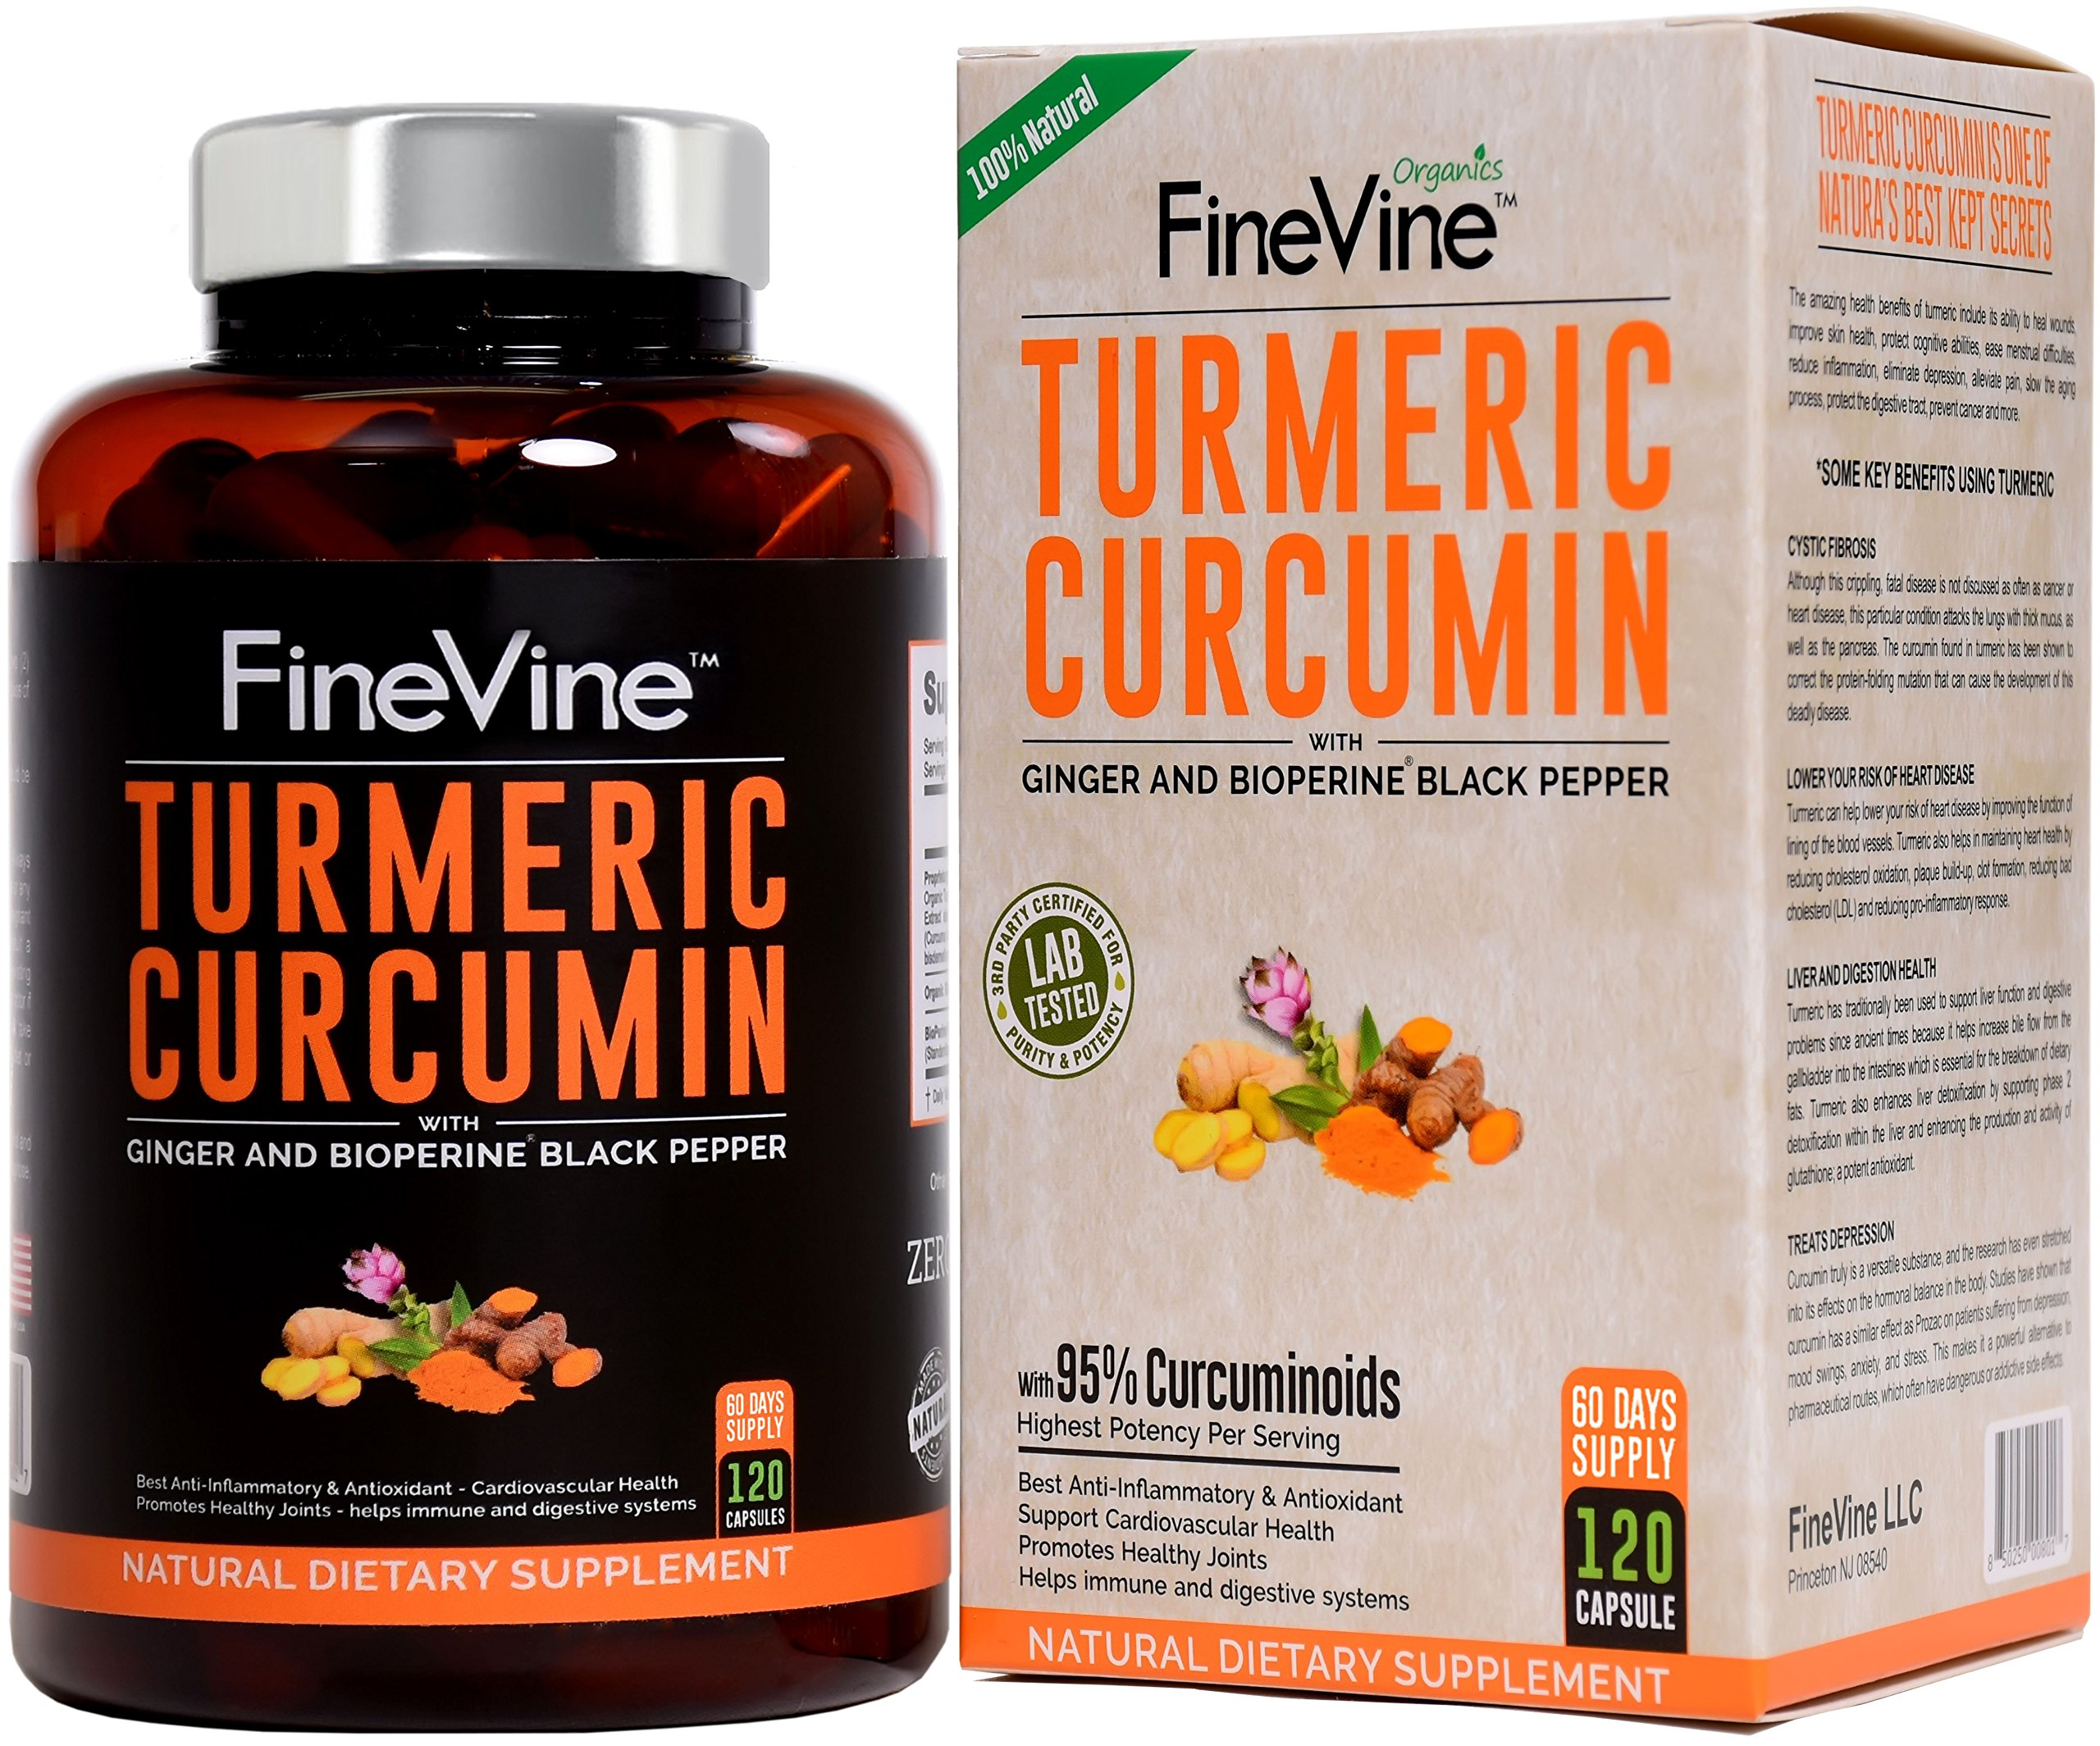 Turmeric Curcumin with BioPerine Black Pepper and Ginger - Made in USA - 120 Vegetarian Capsules for Advanced Absorption, Cardiovascular Health, Joints Support and Anti Aging Supplement (120 Capsules) by FineVine